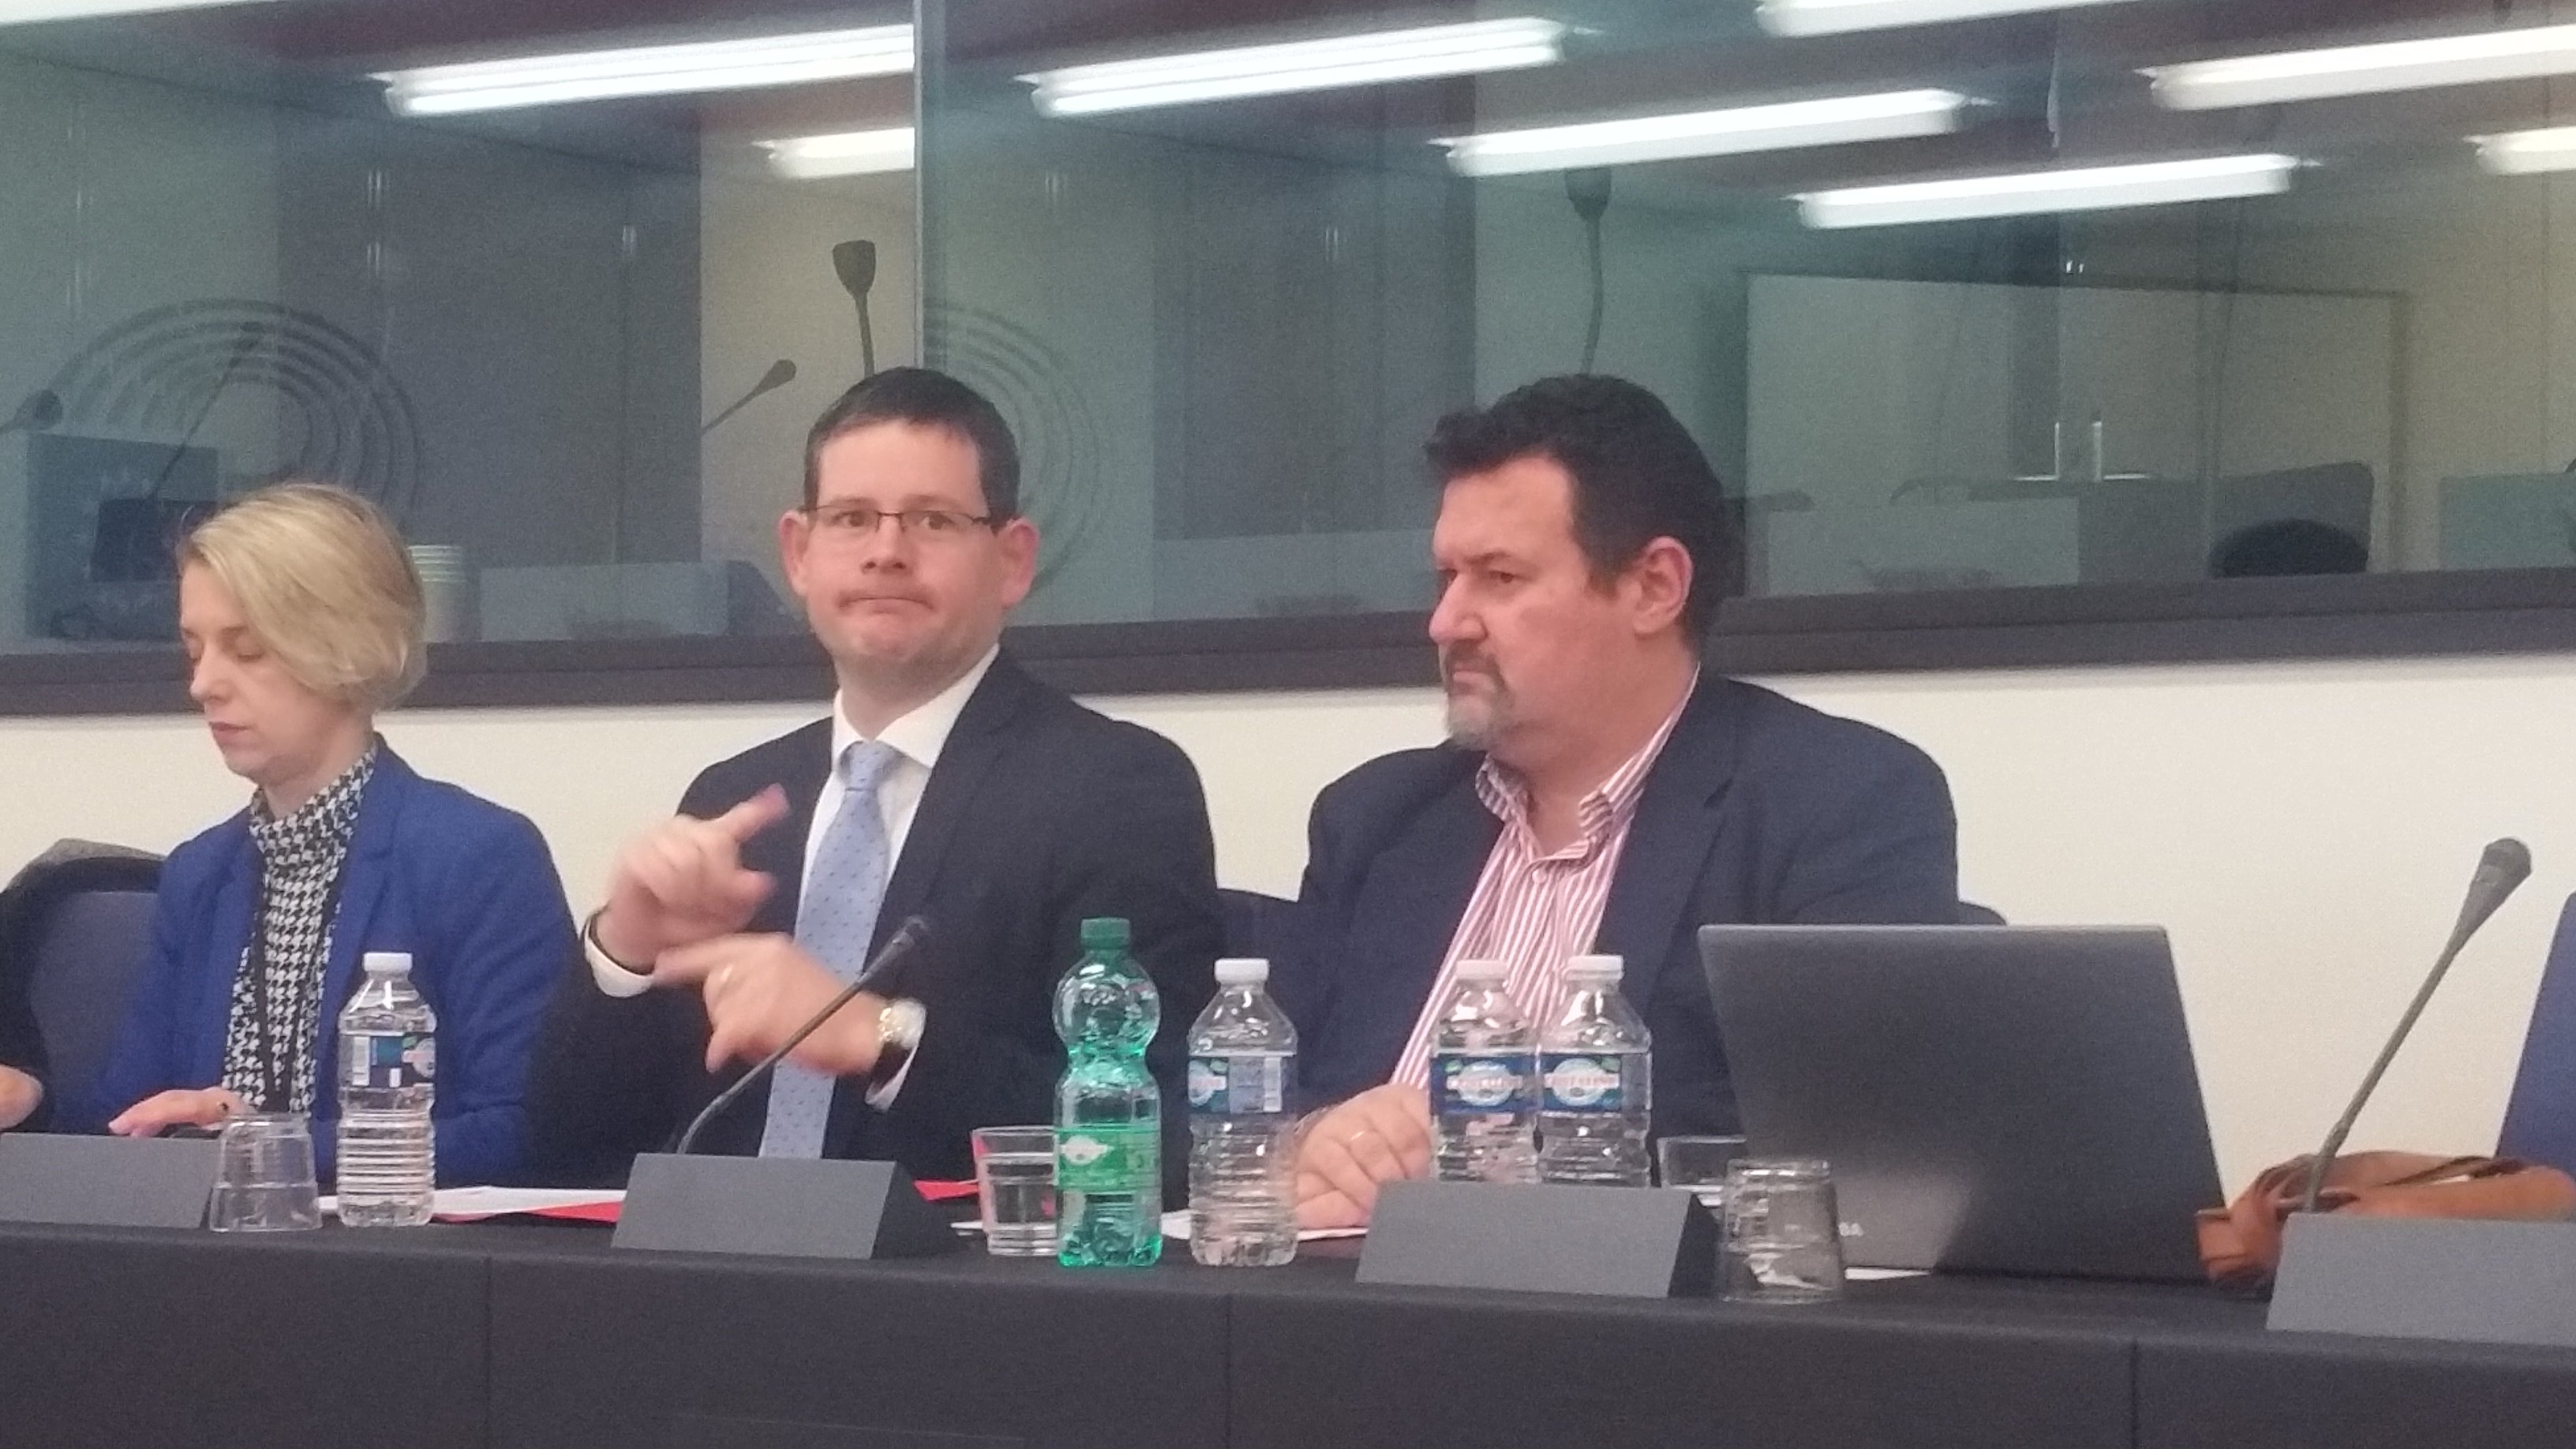 MEPs Helga Stevens and Adam Kosa together with EDF Executive Member, Yannis Yallouros, during the meeting in Strasbourg